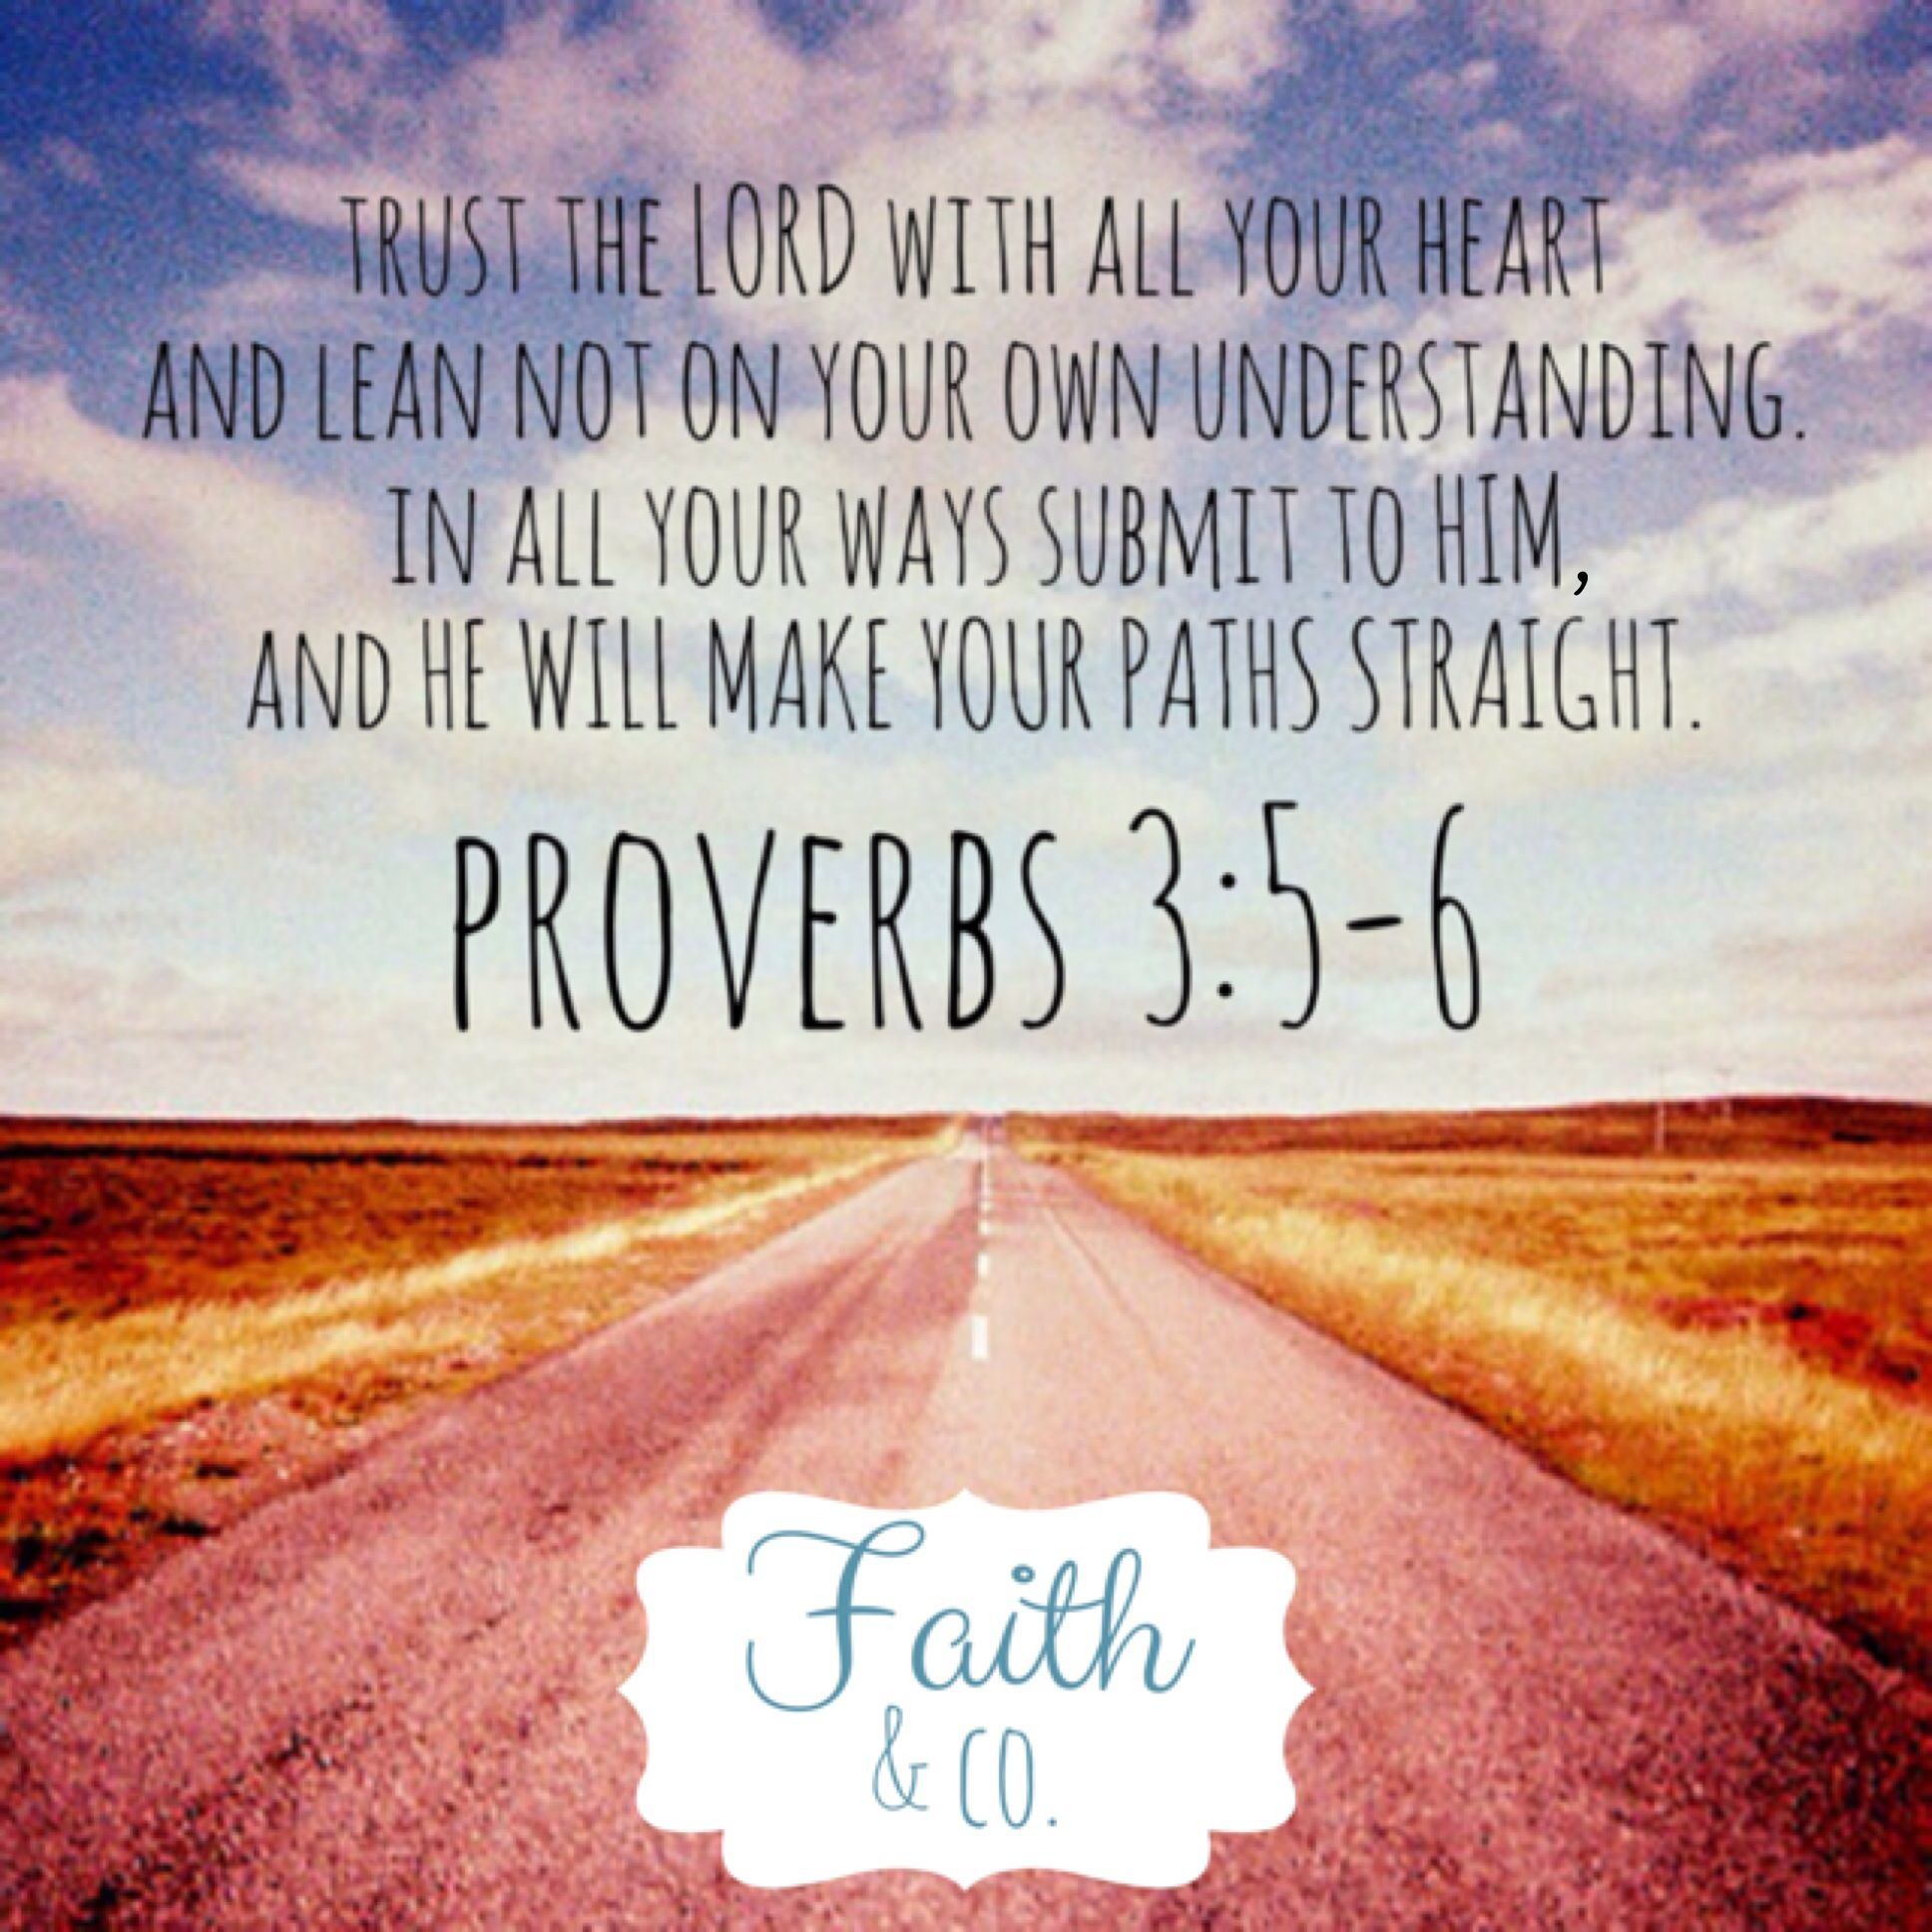 Bible Quotes About Faith Images For  Bible Verses About Strength And Faith In Hard Times .